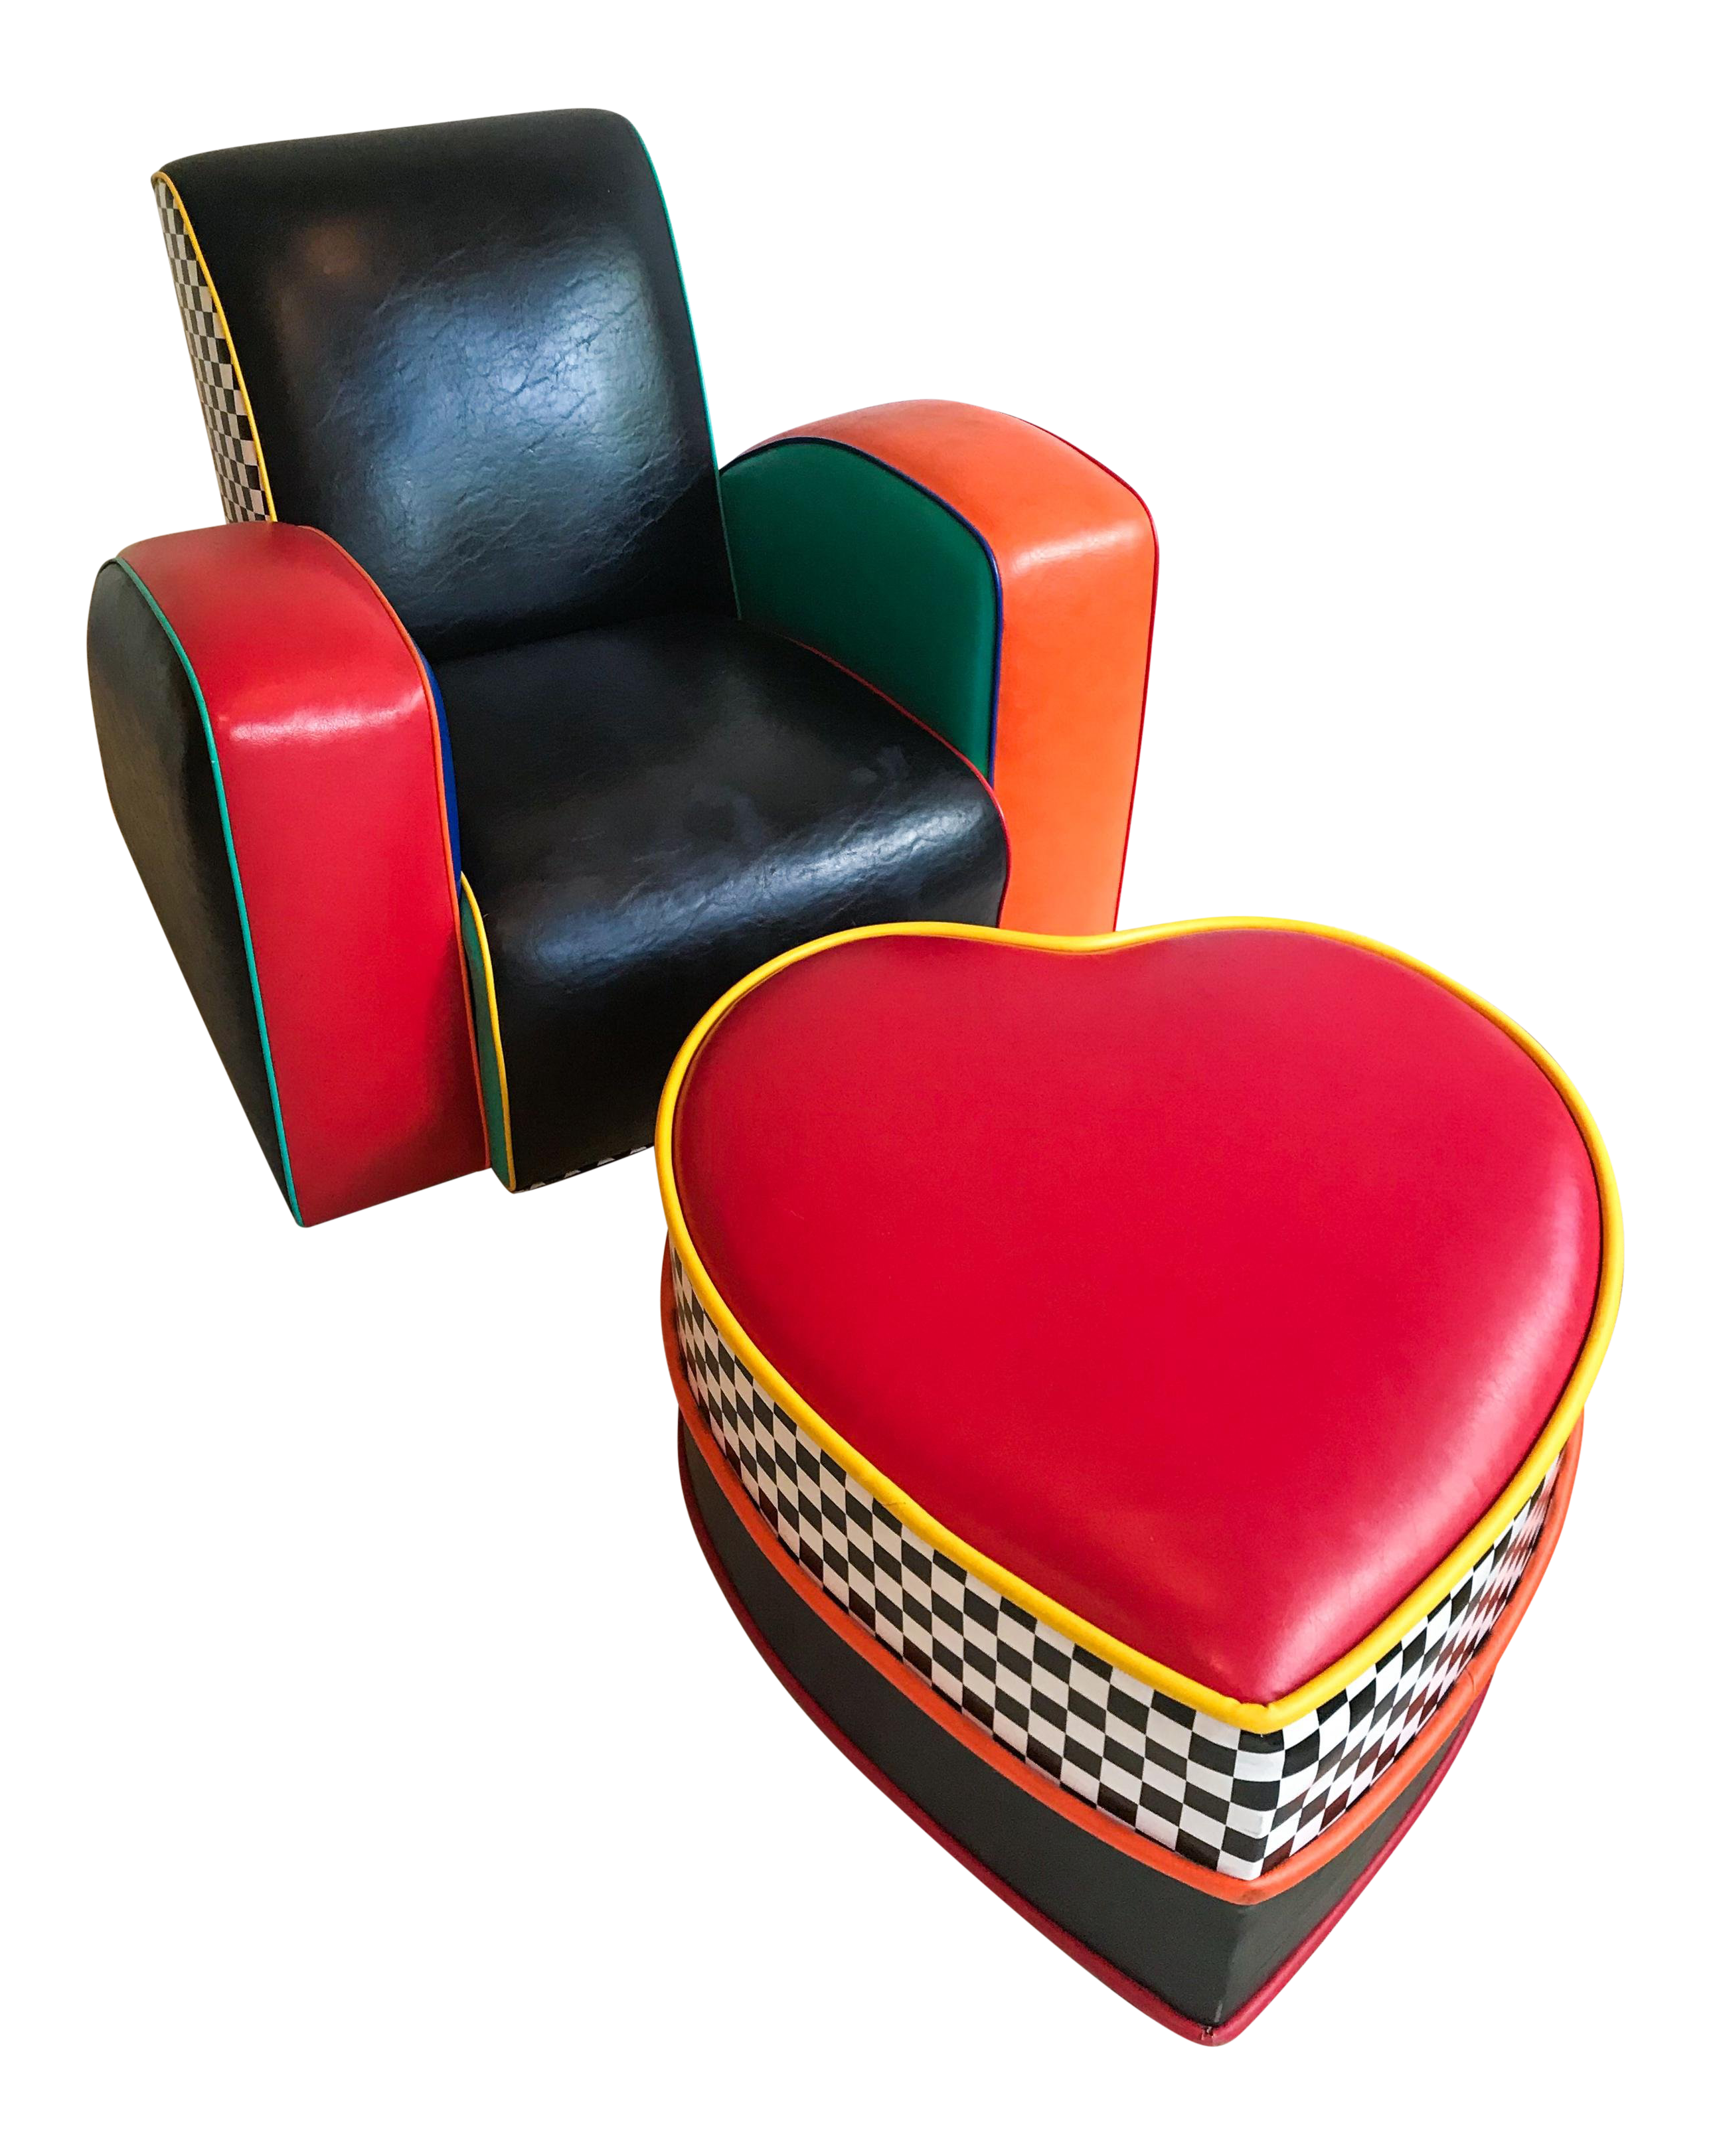 Harry Siegel Mephis Style Chair With Heart Shaped Ottoman, Colorful And  Bright, 80u0027s